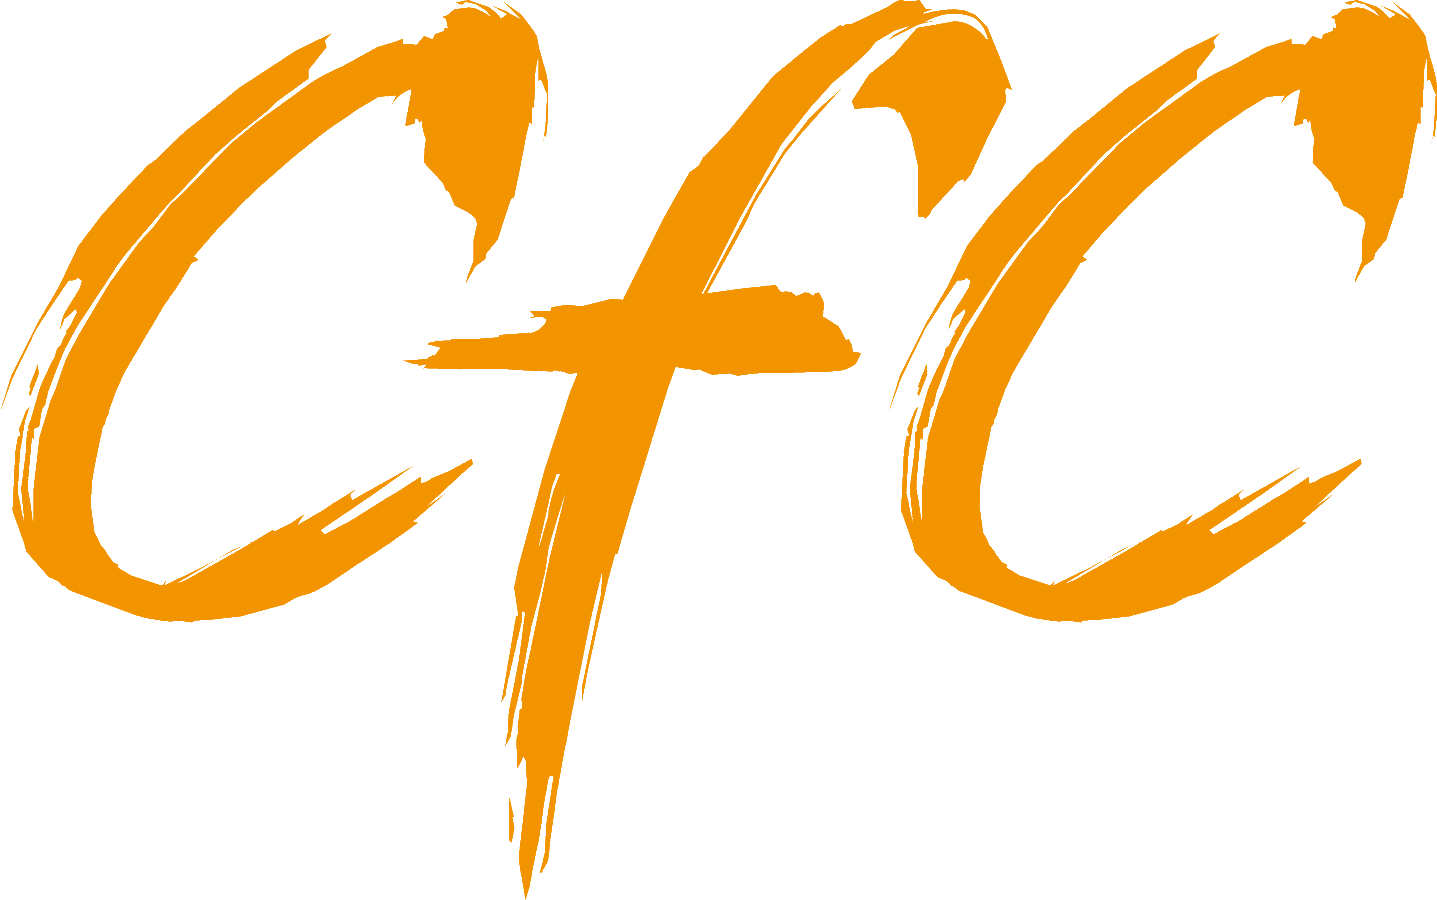 Logo CFC - Coaching für Christen